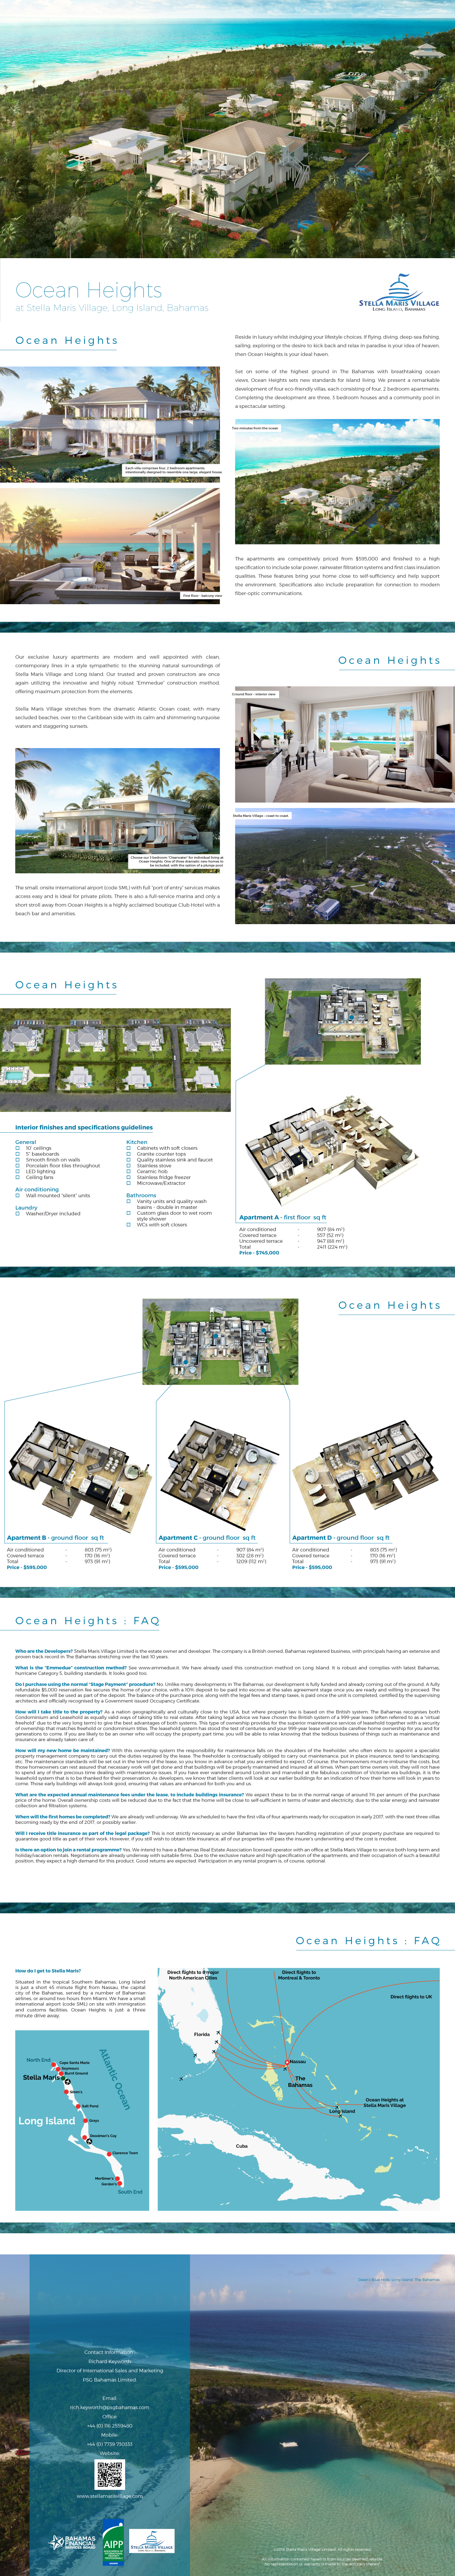 Ocean-Heights-Brochure-Image